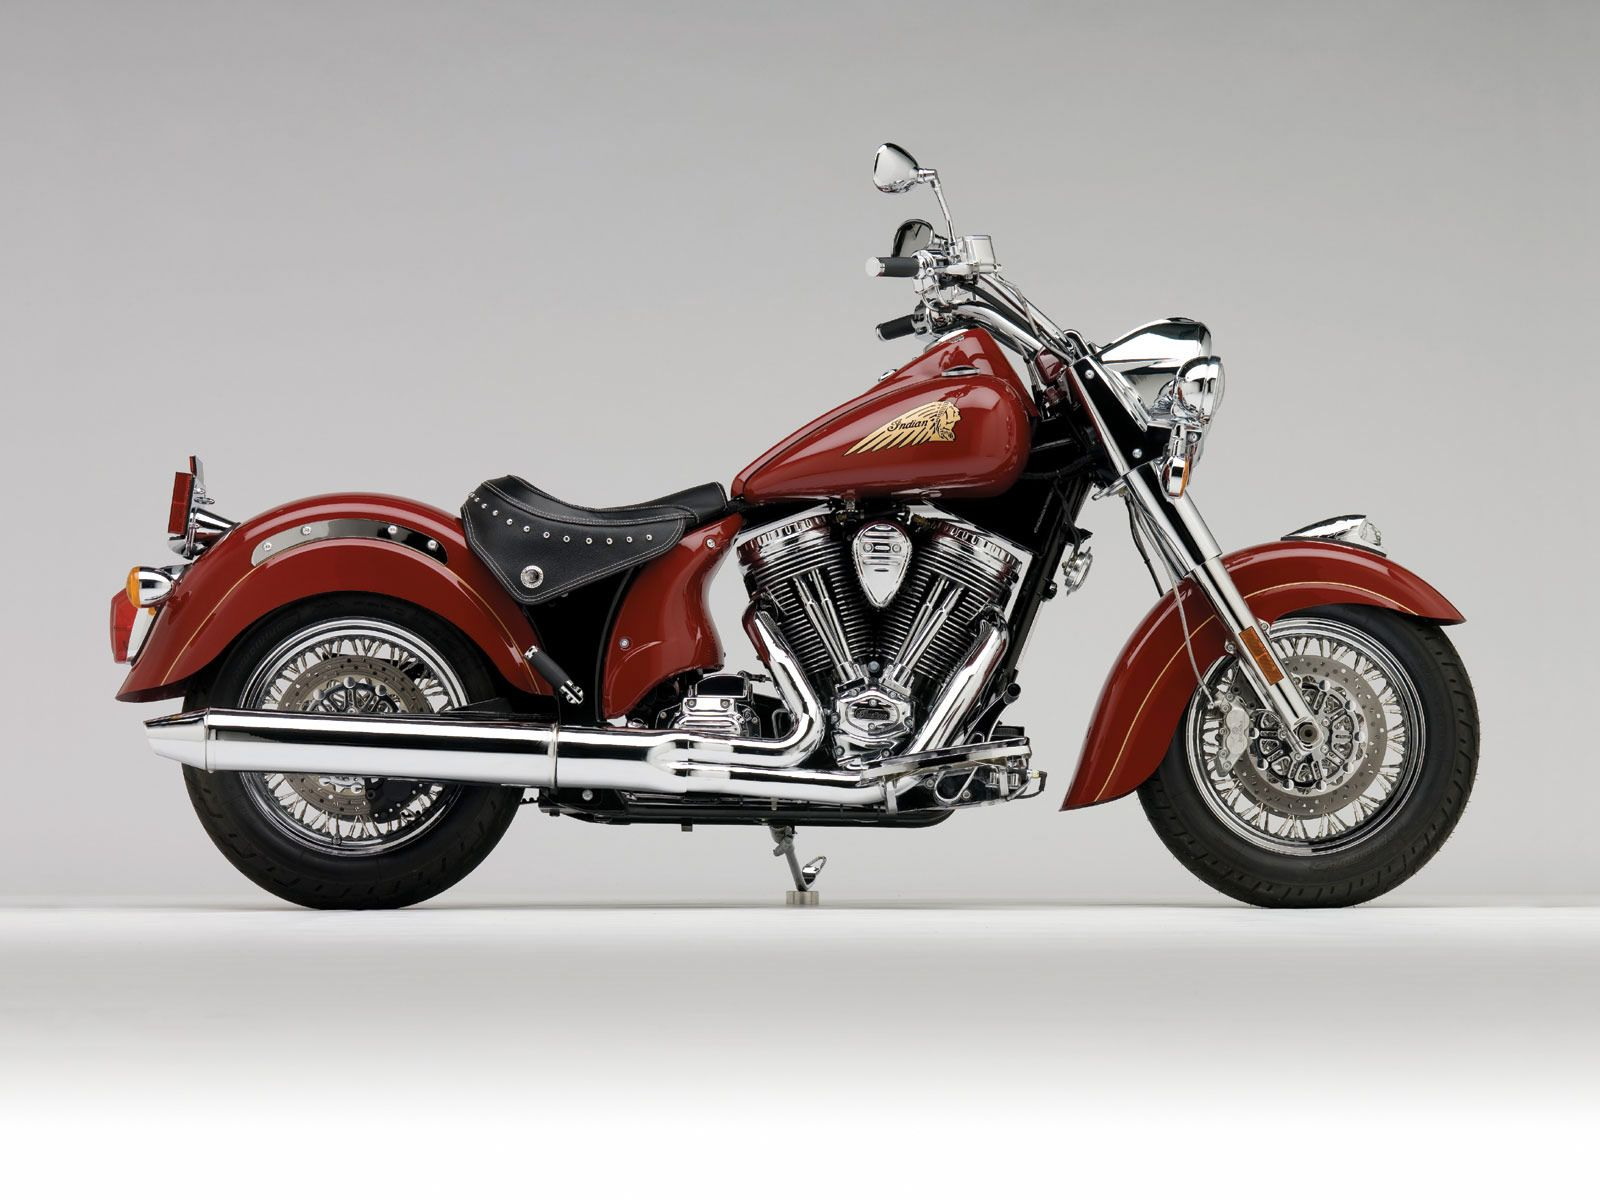 2009 INDIAN Chief Standard motorcycle desktop wallpaper 1600x1200